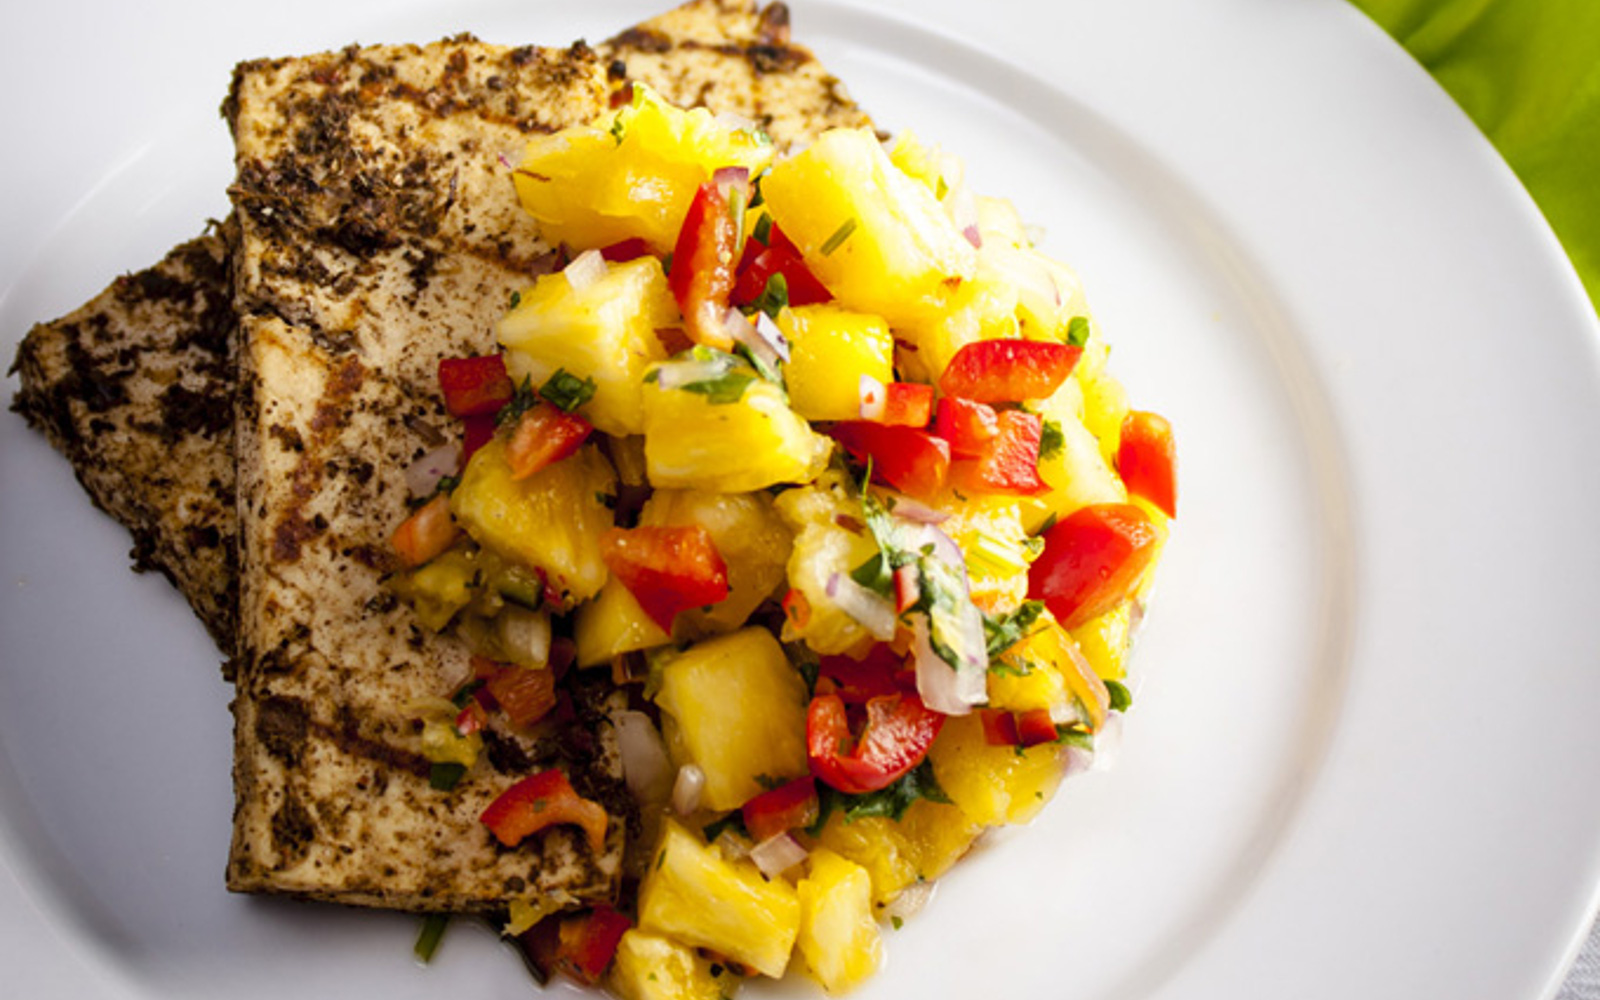 Grilled Jerk Tofu With Pineapple Salsa